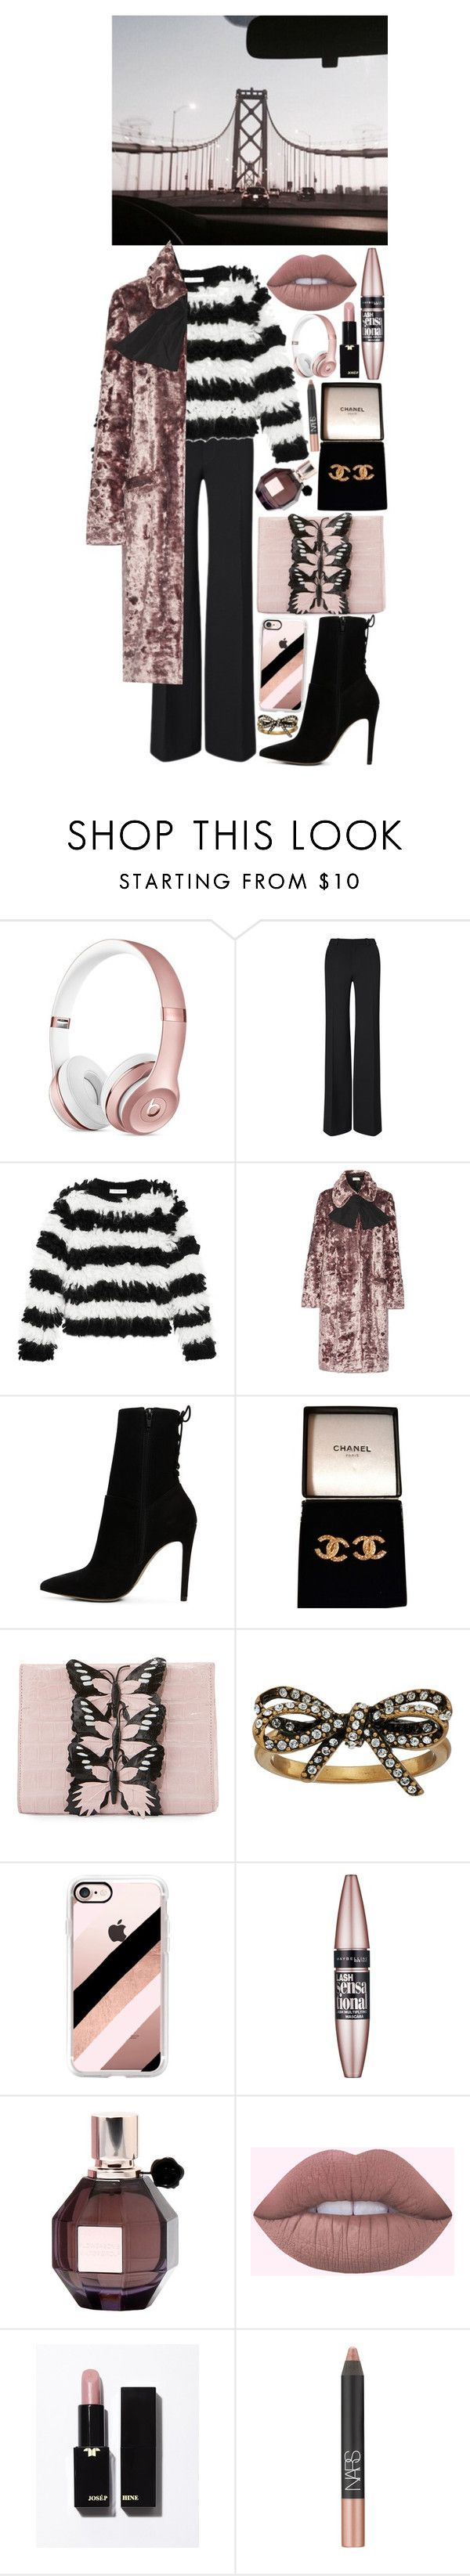 """caught in the middle"" by loveselena22 ❤ liked on Polyvore featuring Roland Mouret, MaxMara, Isa Arfen, ALDO, Chanel, Nancy Gonzalez, Marc Jacobs, Casetify, Maybelline and Viktor & Rolf"